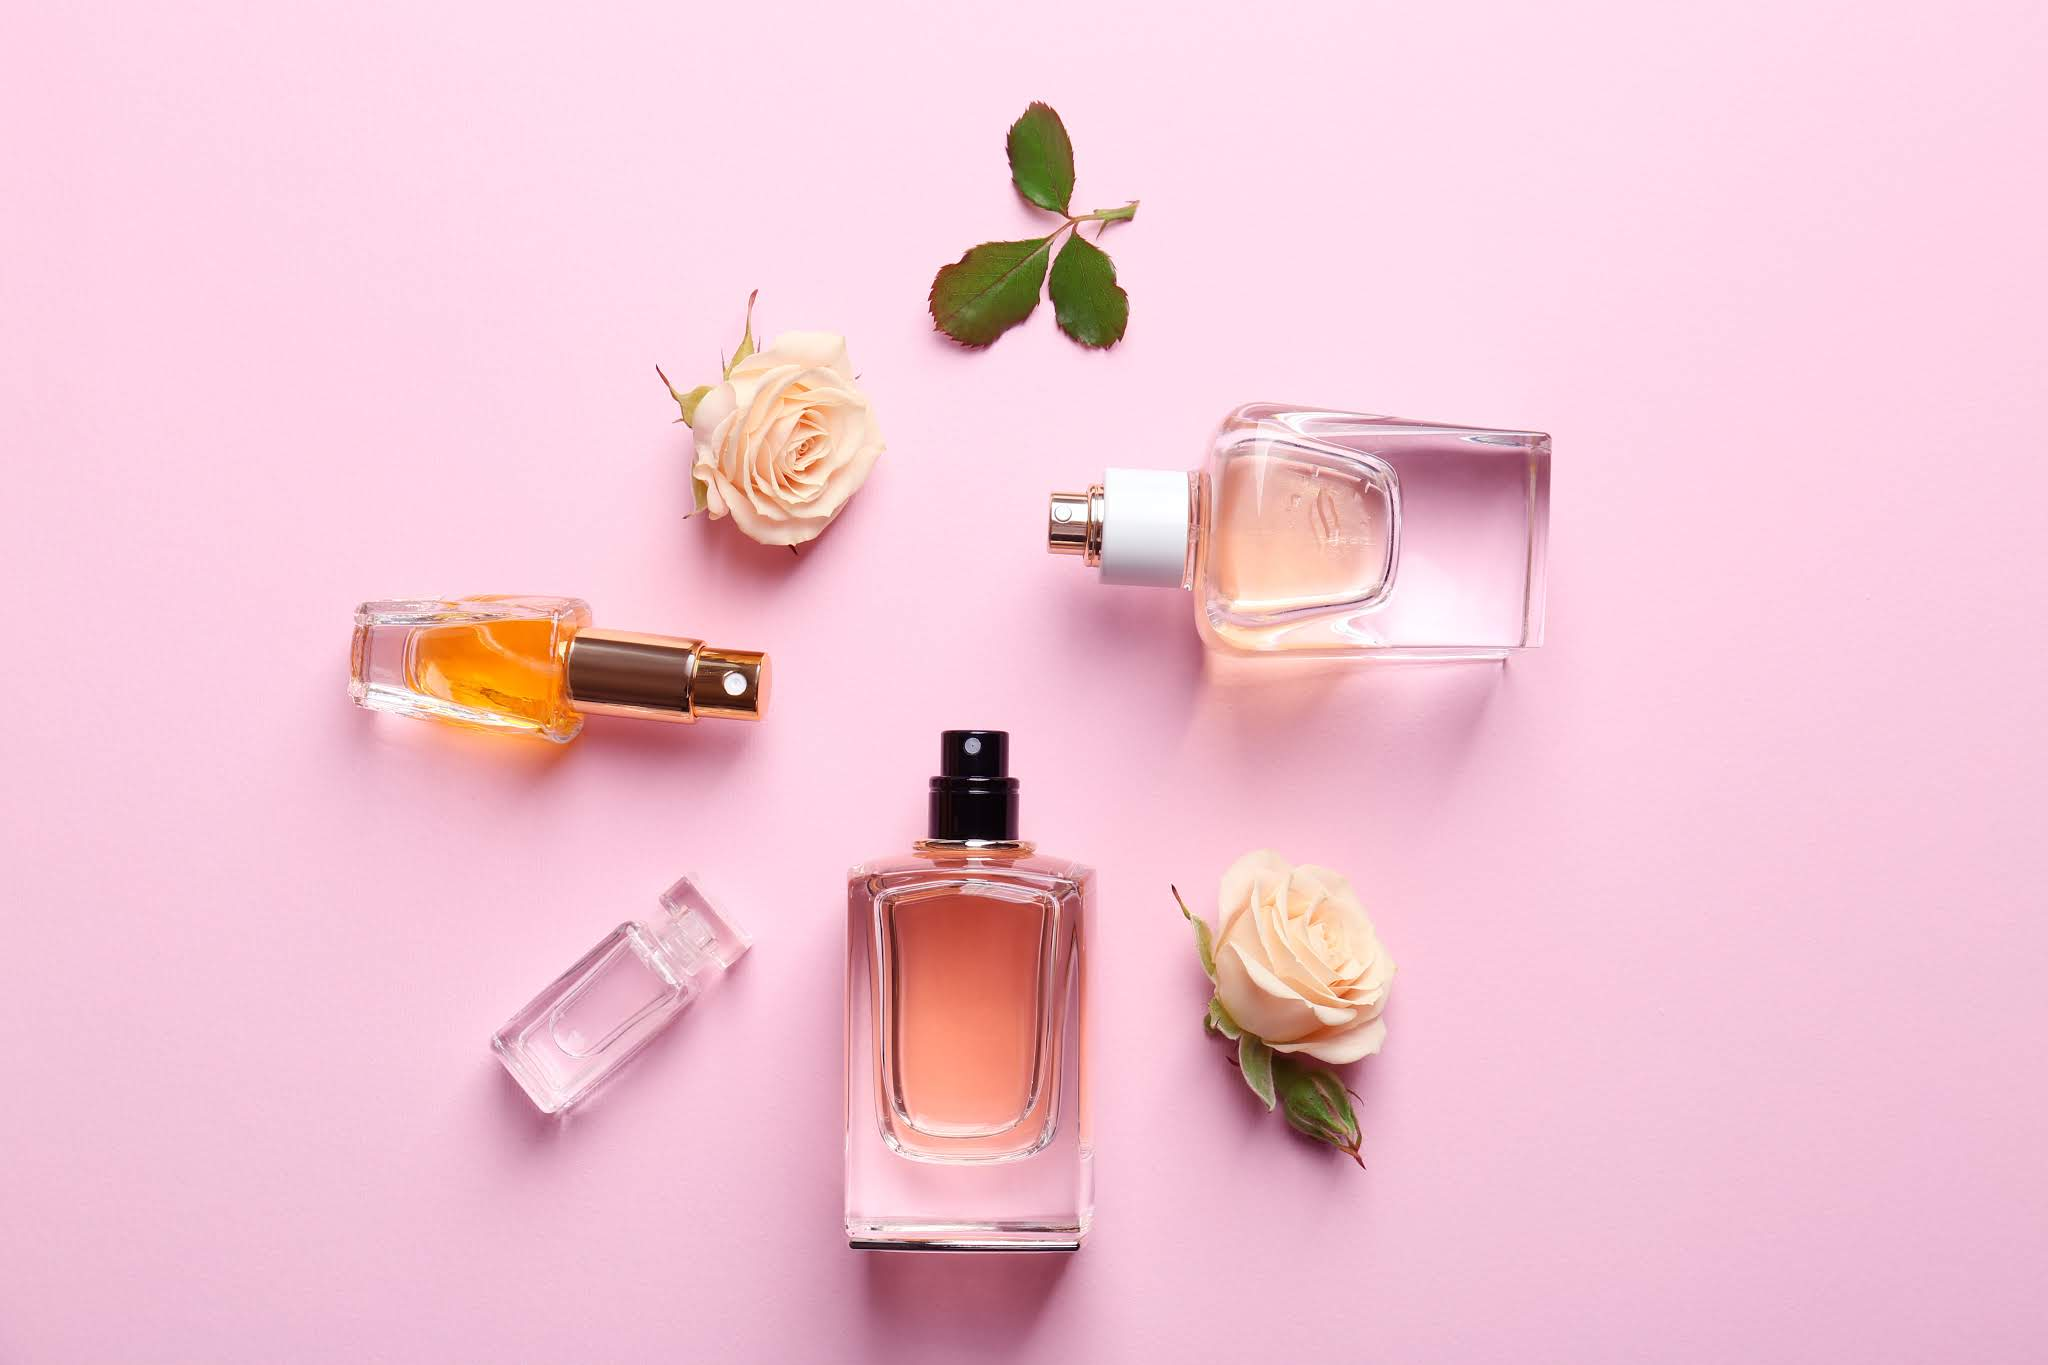 Perfume for valentine's day gift